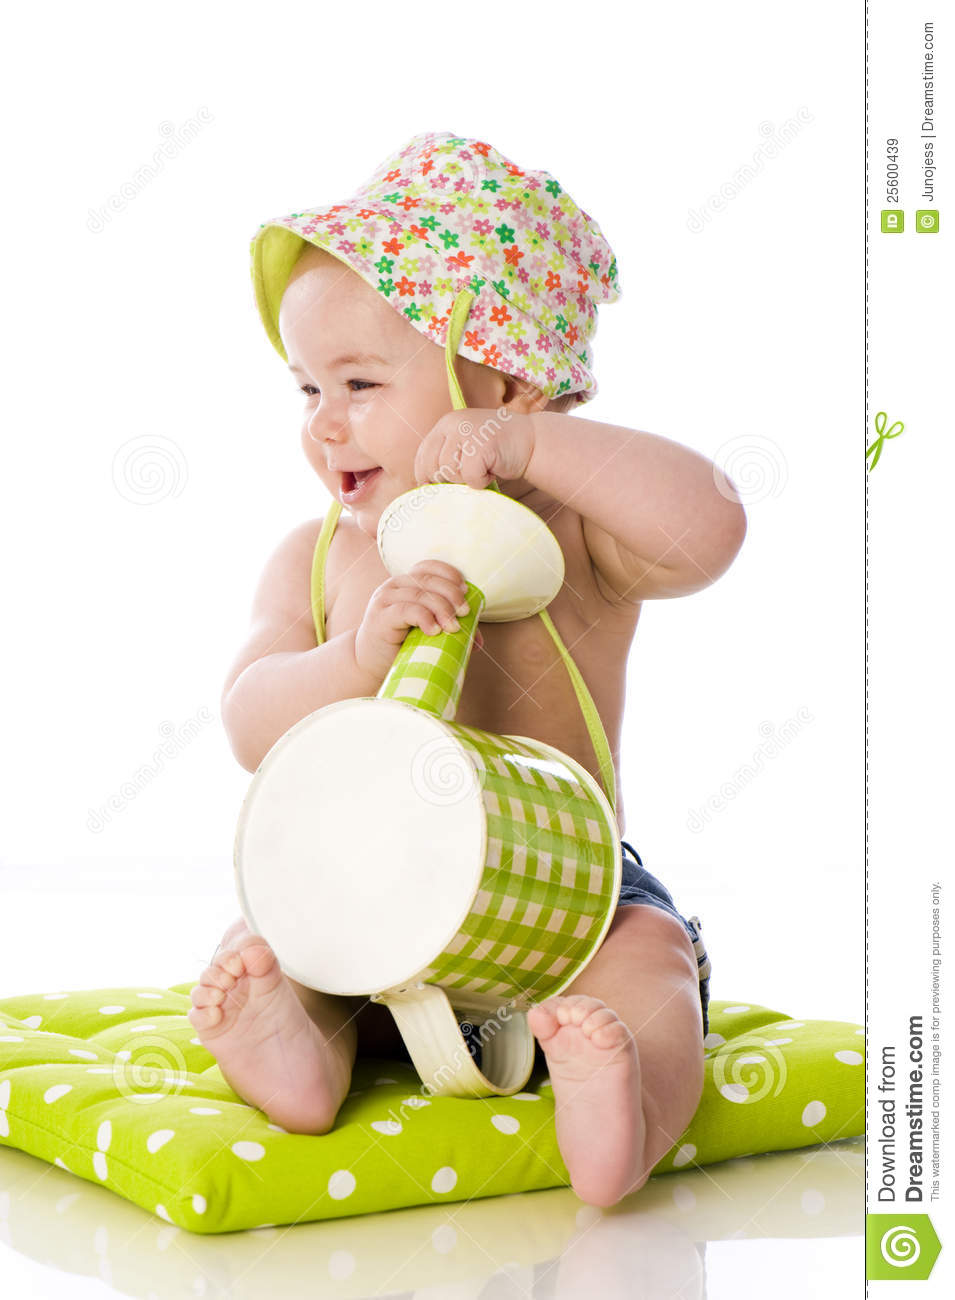 Watering can kids toy is the cutest and adorable can for kids, it has greatsize for kids about years old. Kids love using it very much. CUTEST AND ADORABLE: Watering can kids toy is the cutest can.